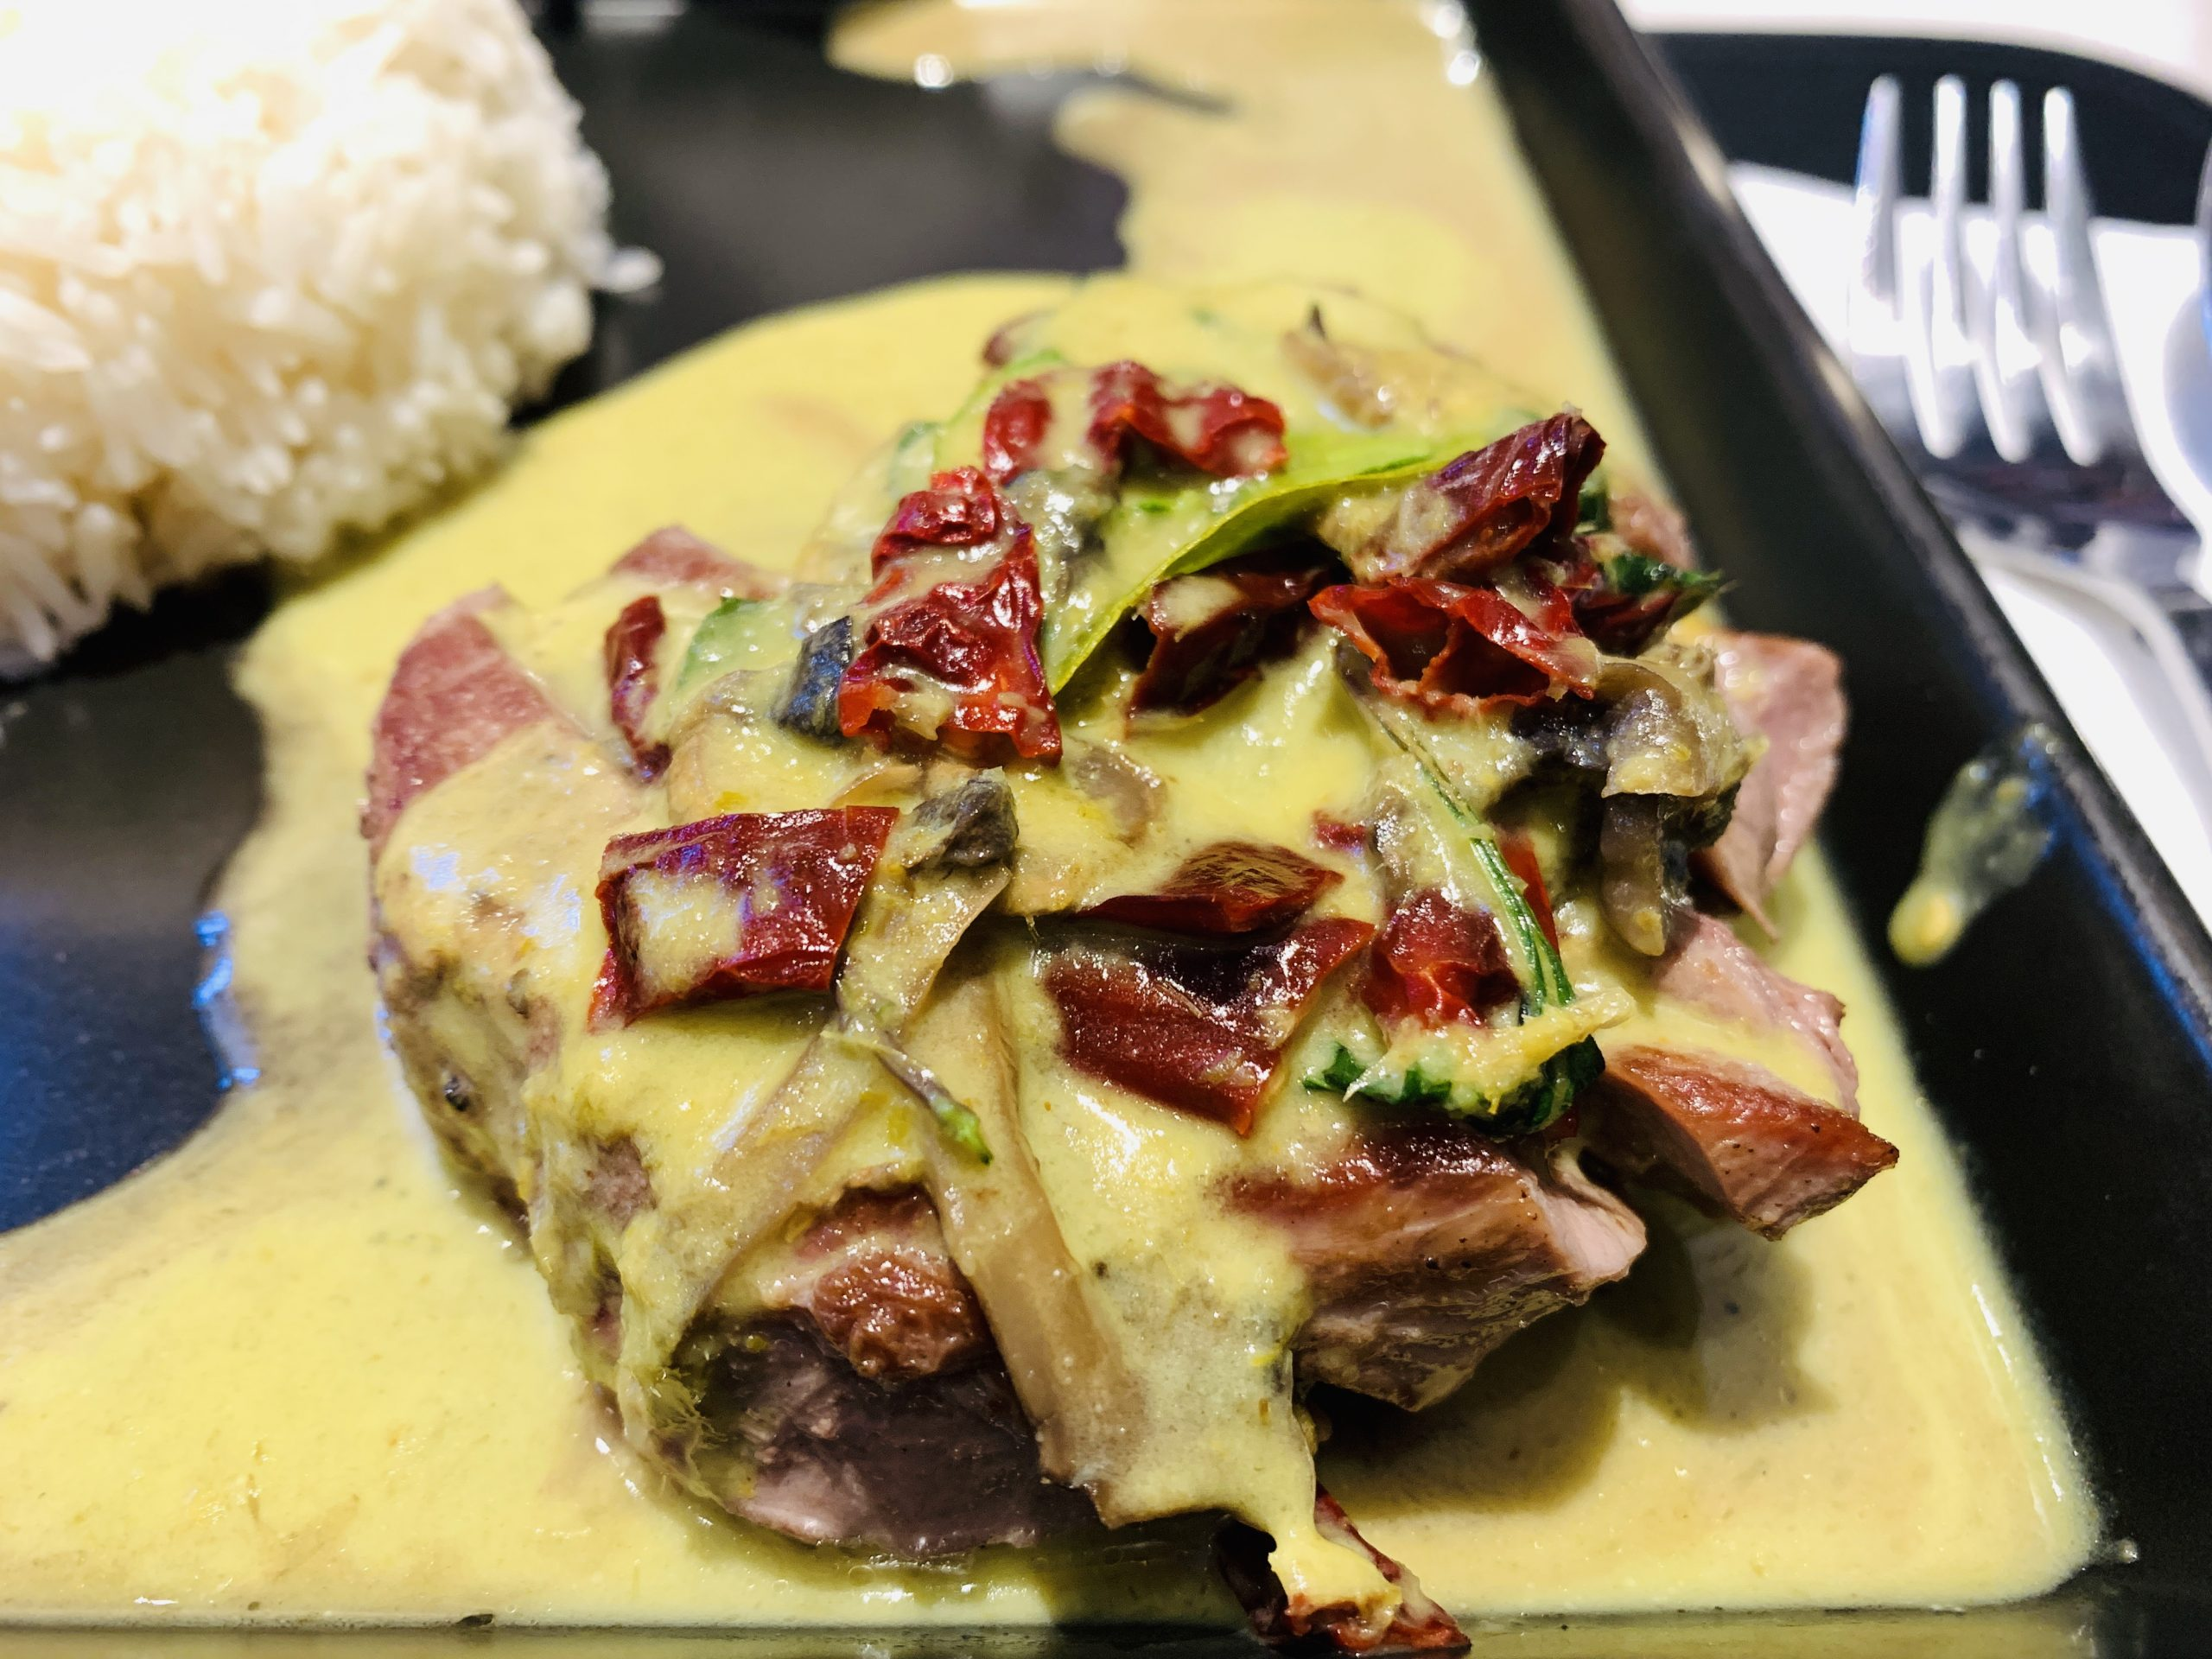 Greyhound Cafe - Tenderloin Steak with Green Curry Sauce and Rice